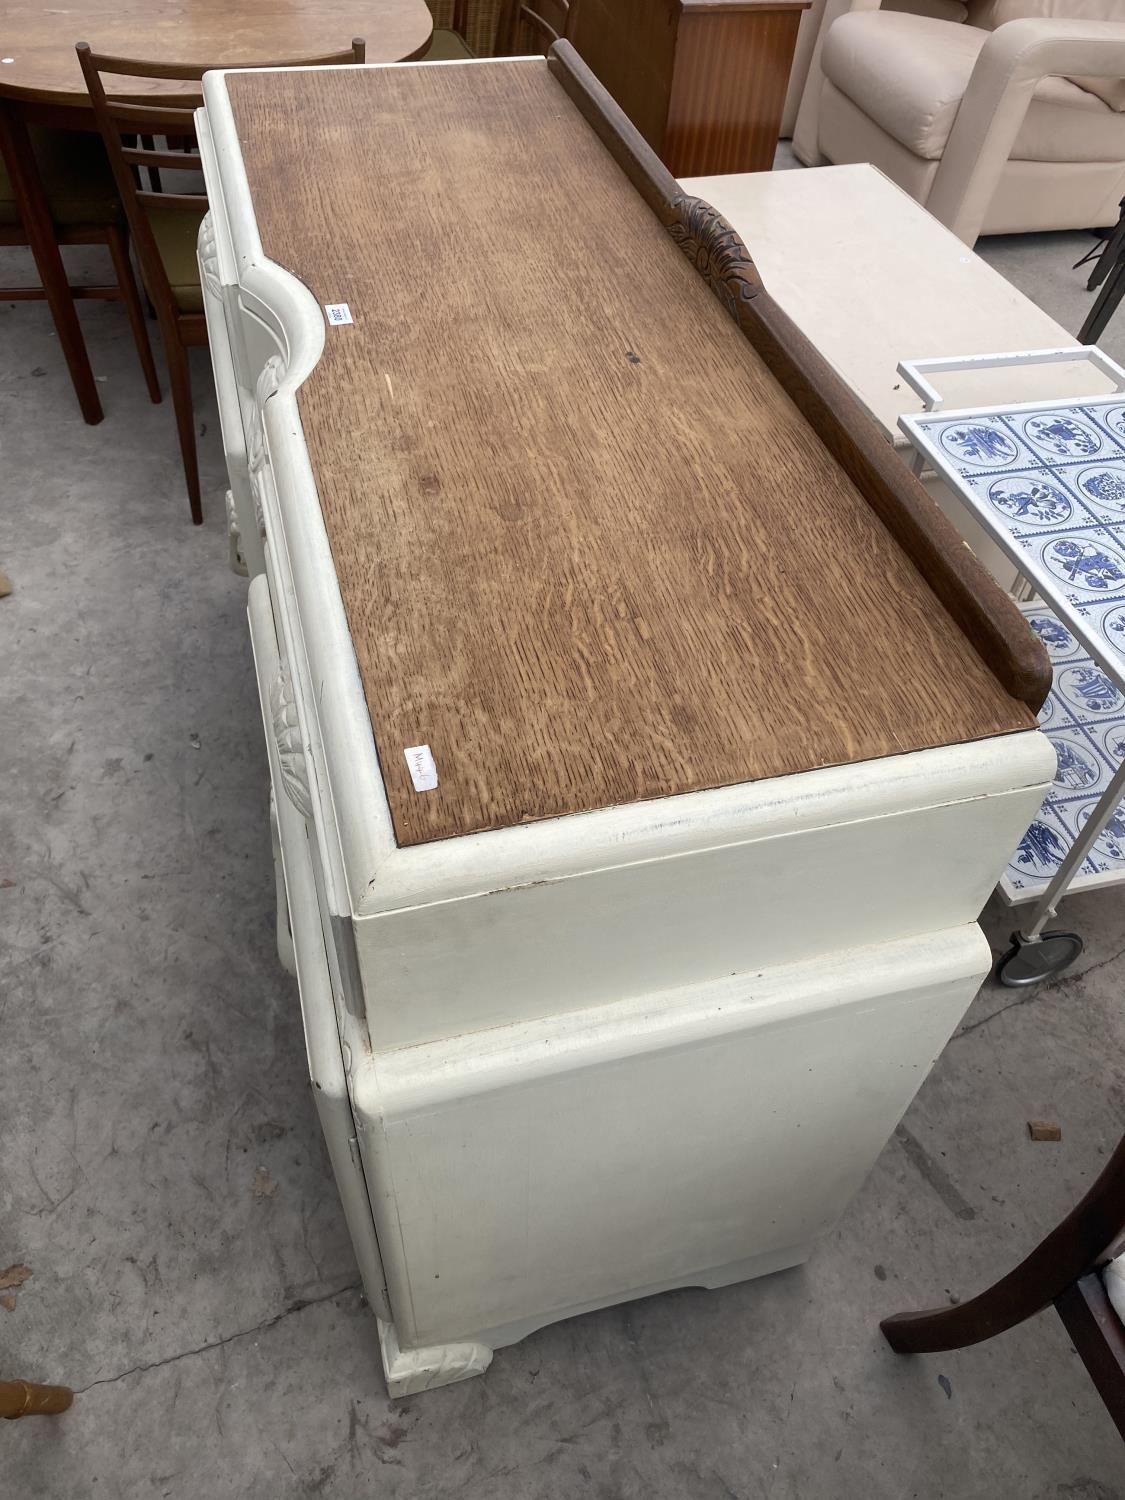 """AN EARLY 20TH CENTURY OAK SIDEBOARD WITH SHABBY CHIC PAINTING, 54"""" WIDE - Image 4 of 4"""